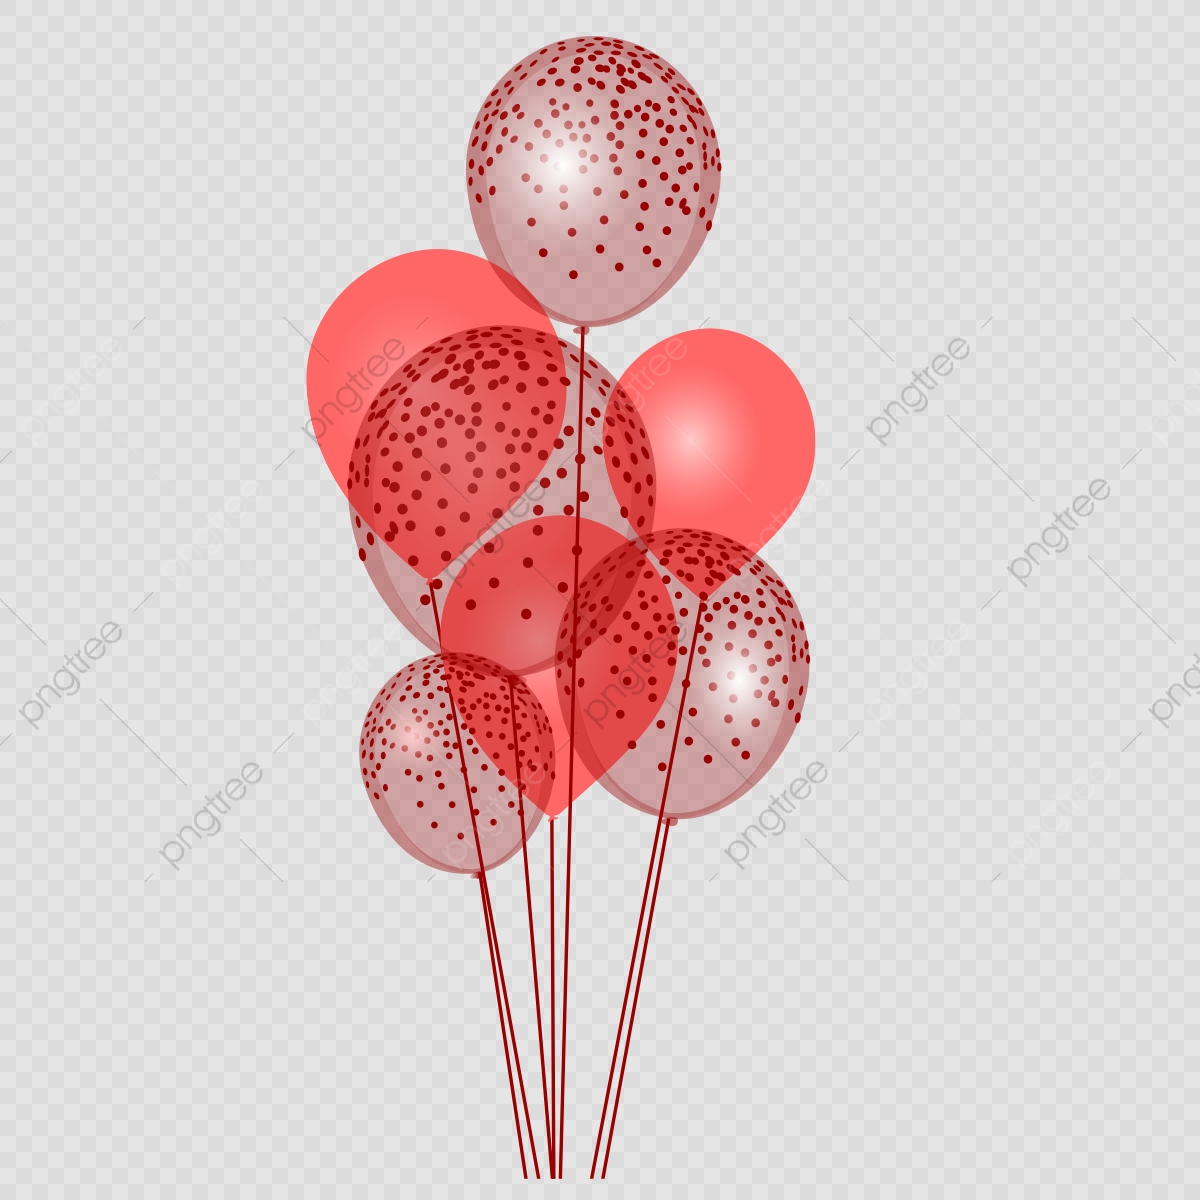 hight resolution of commercial use resource upgrade to premium plan and get license authorization upgradenow maroon party balloon